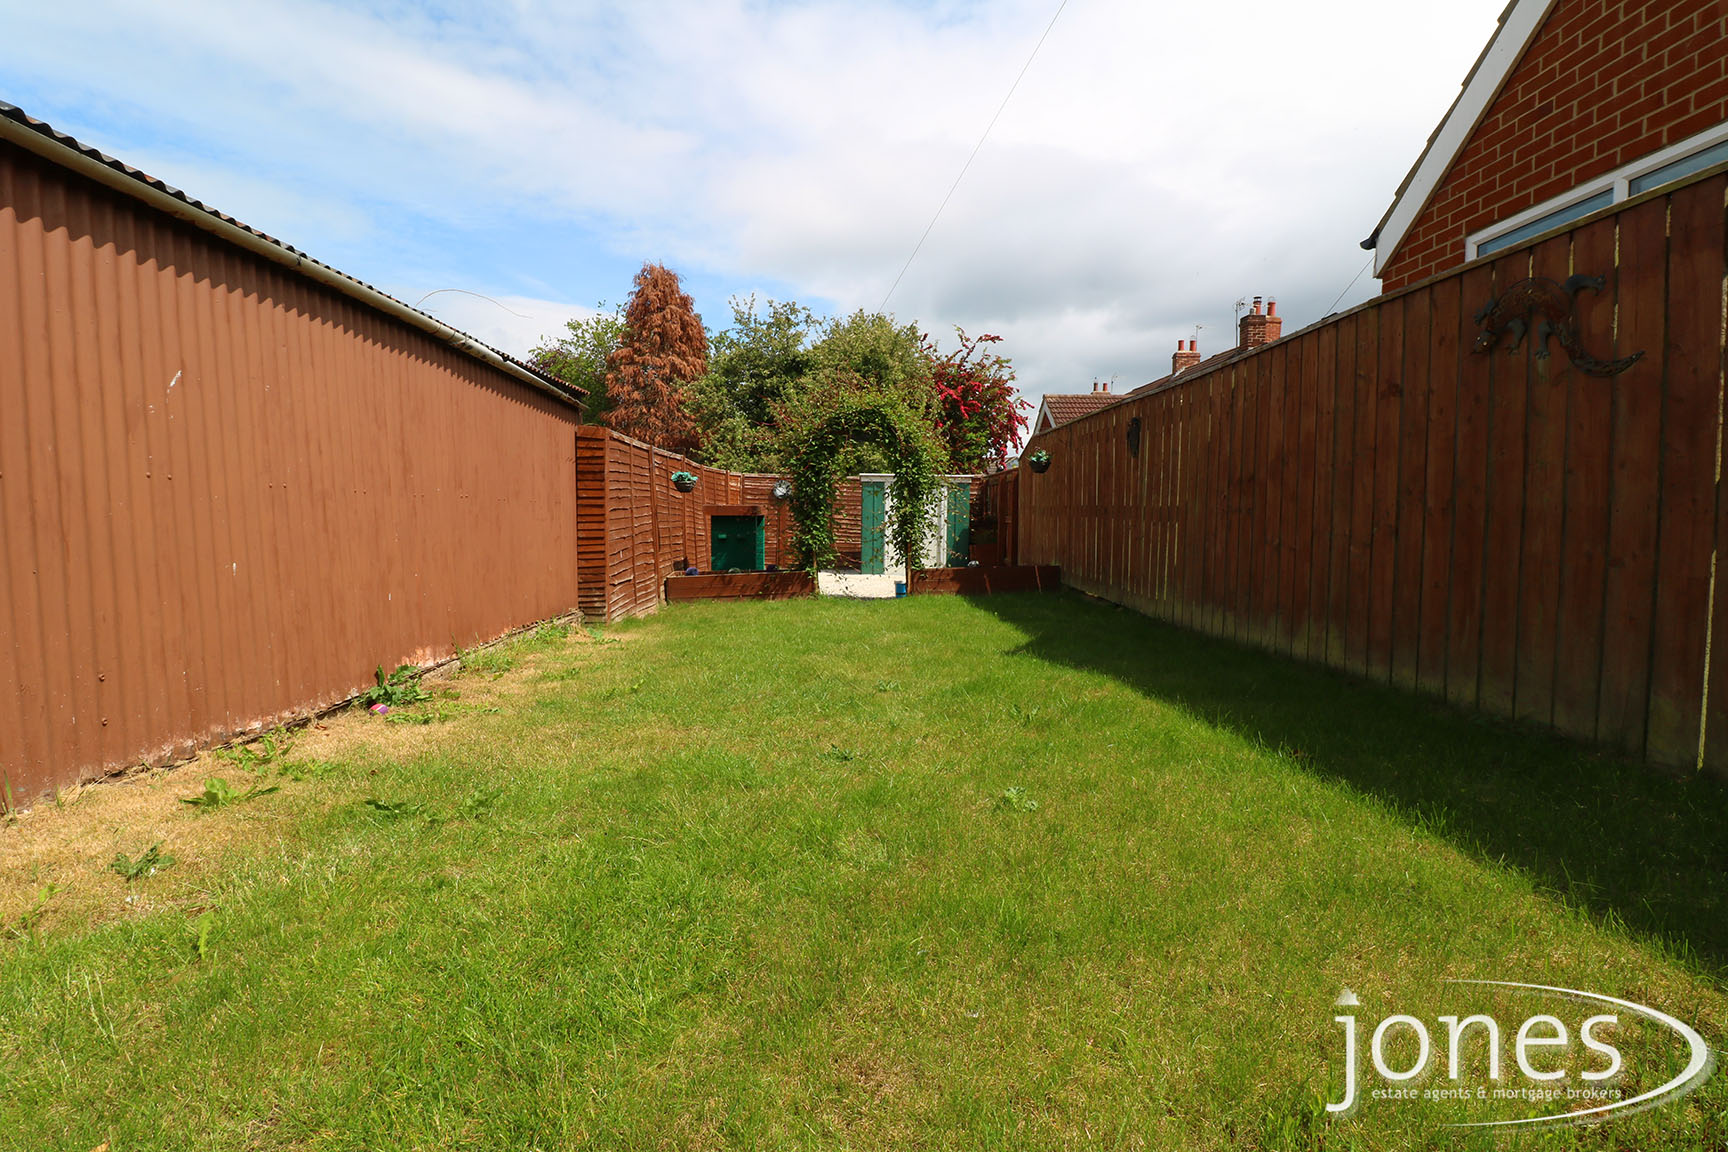 Home for Sale Let - Photo 15 Station Road Norton Stockton on Tees TS20 1PE